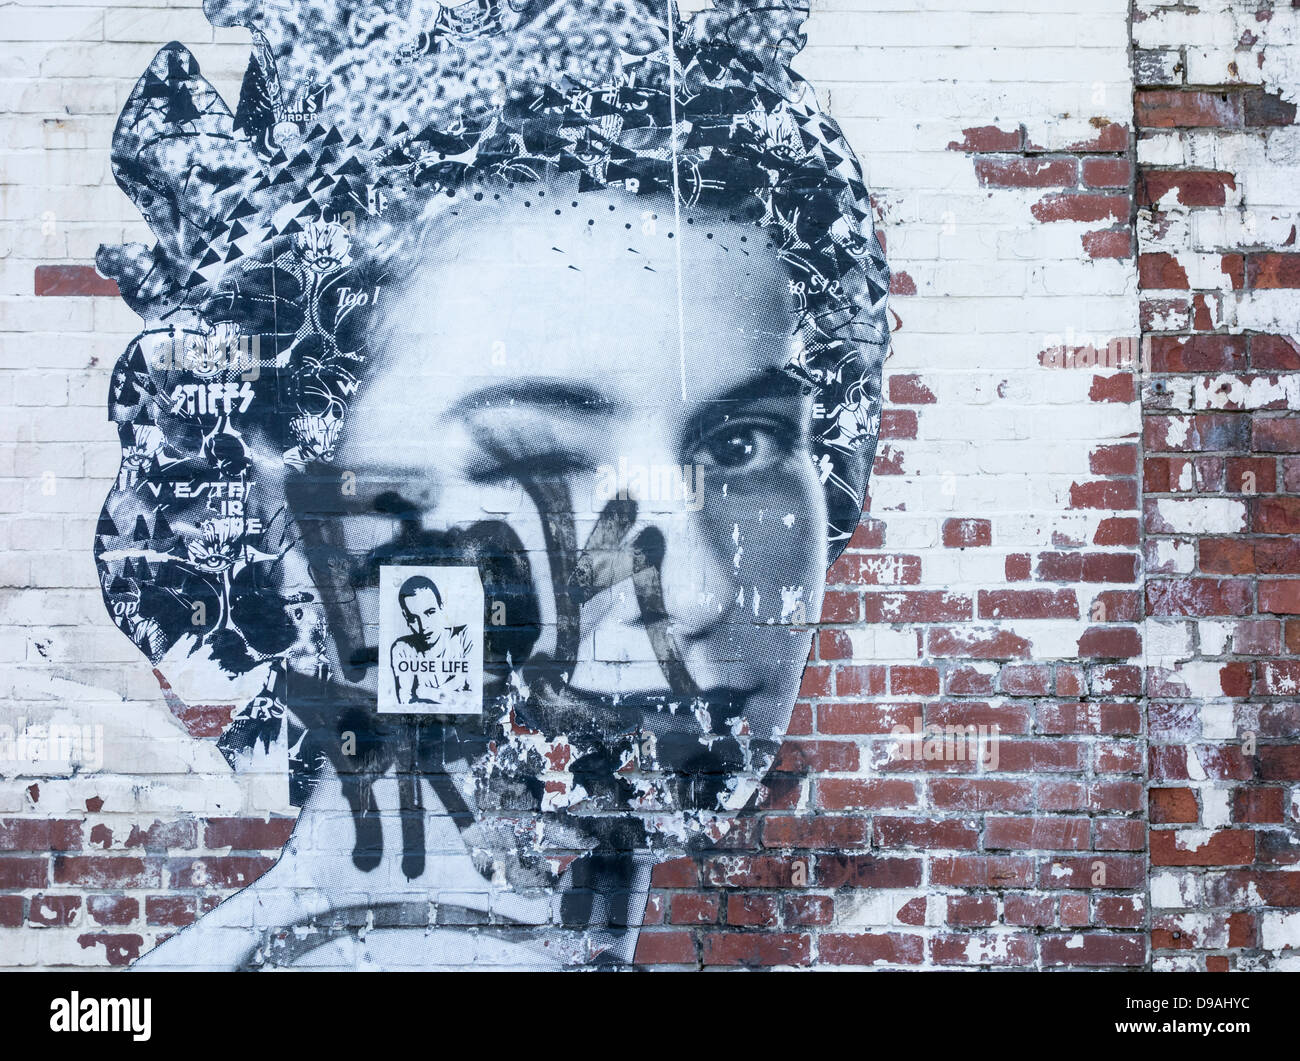 Graffiti of Queen Elizabeth on brick wall in Ouseburn, Newcastle, England, UK - Stock Image